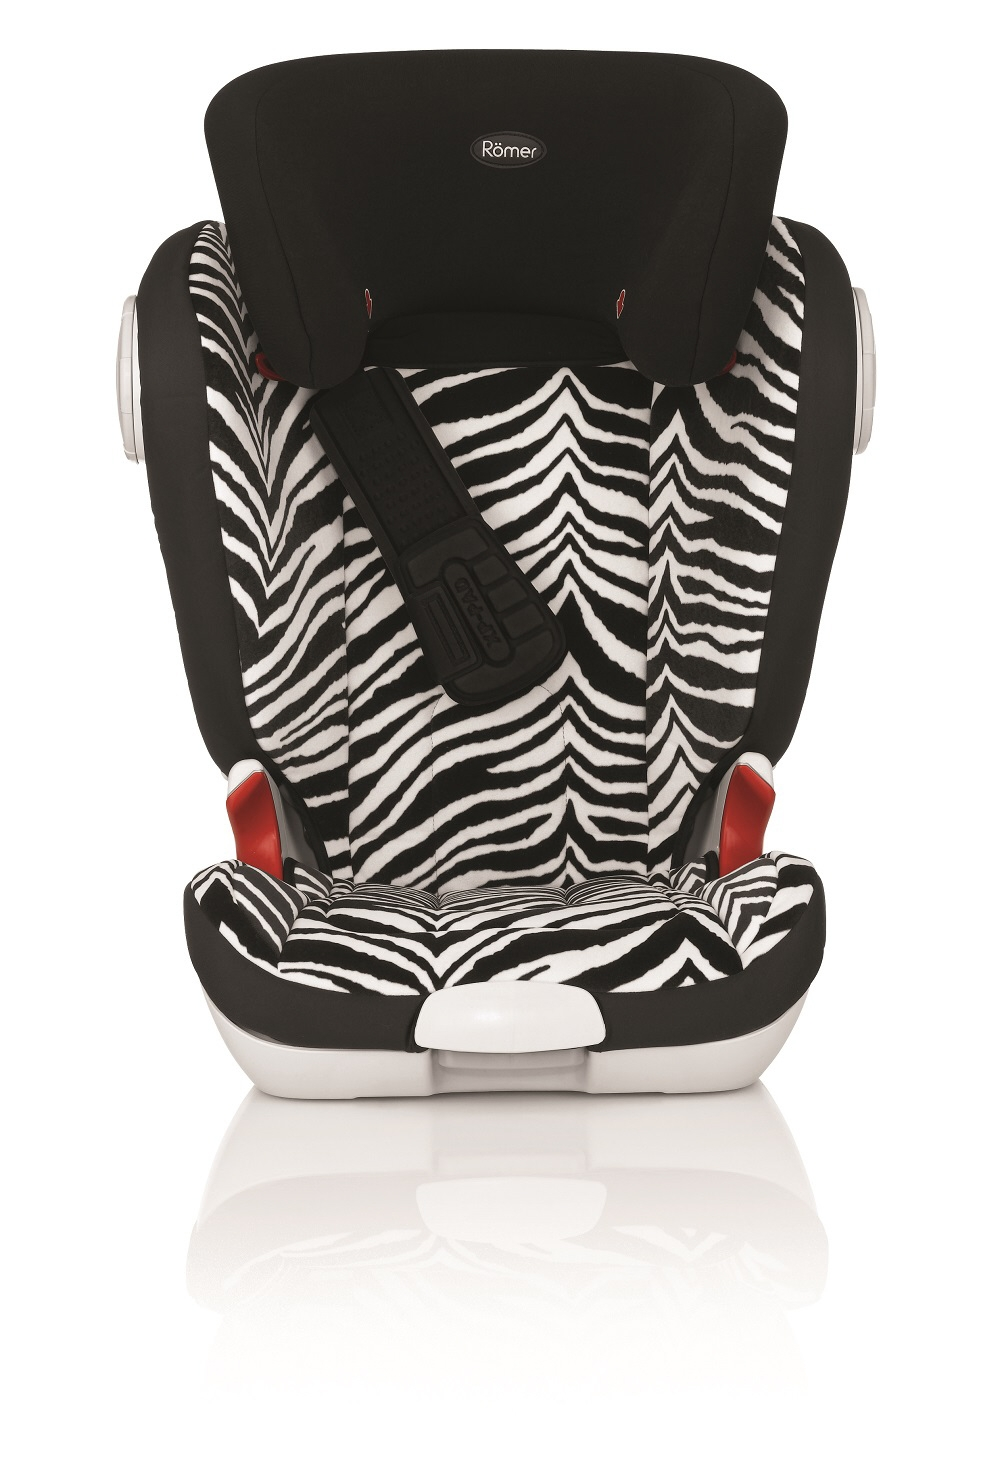 britax r mer kidfix xp sict 2015 smart zebra. Black Bedroom Furniture Sets. Home Design Ideas